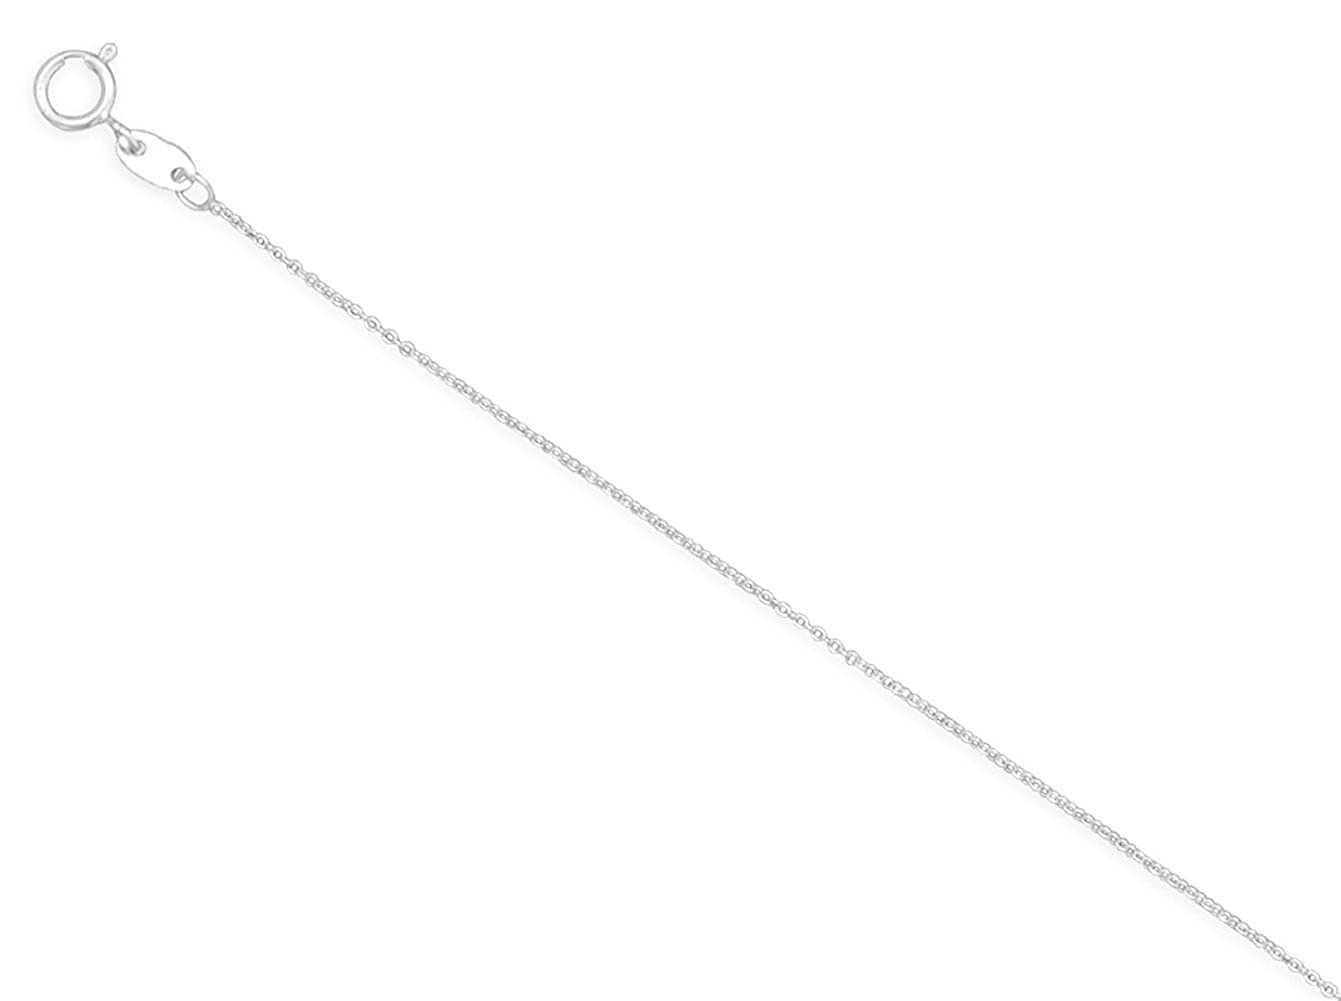 0.6mm 020 Gage Sterling Silver Open Cable Italian Chain Necklace